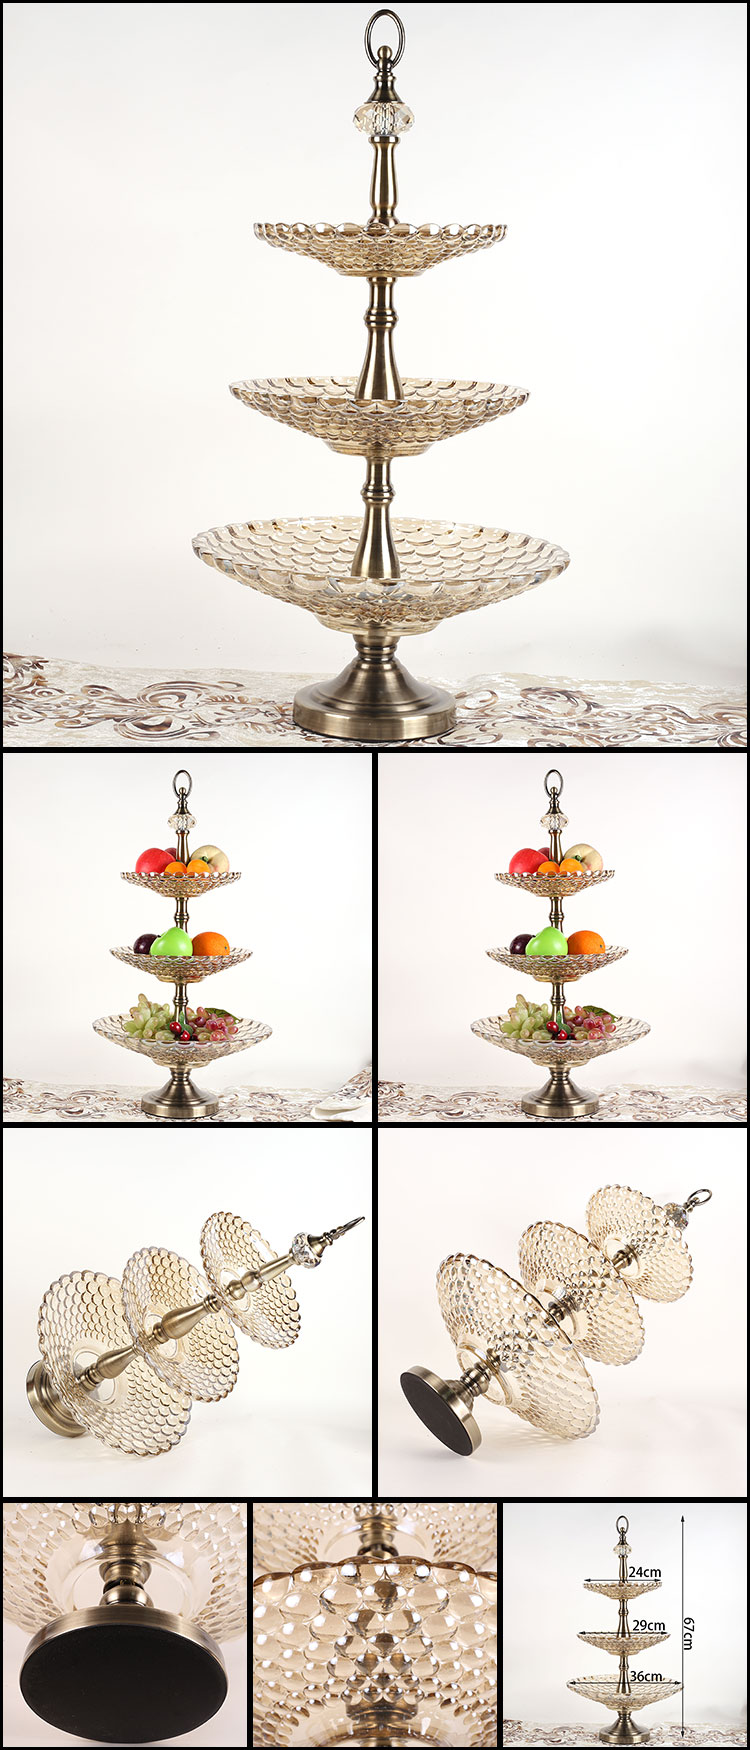 2493 commercial activity wedding decoration tray glass 3 tiers fruit tray